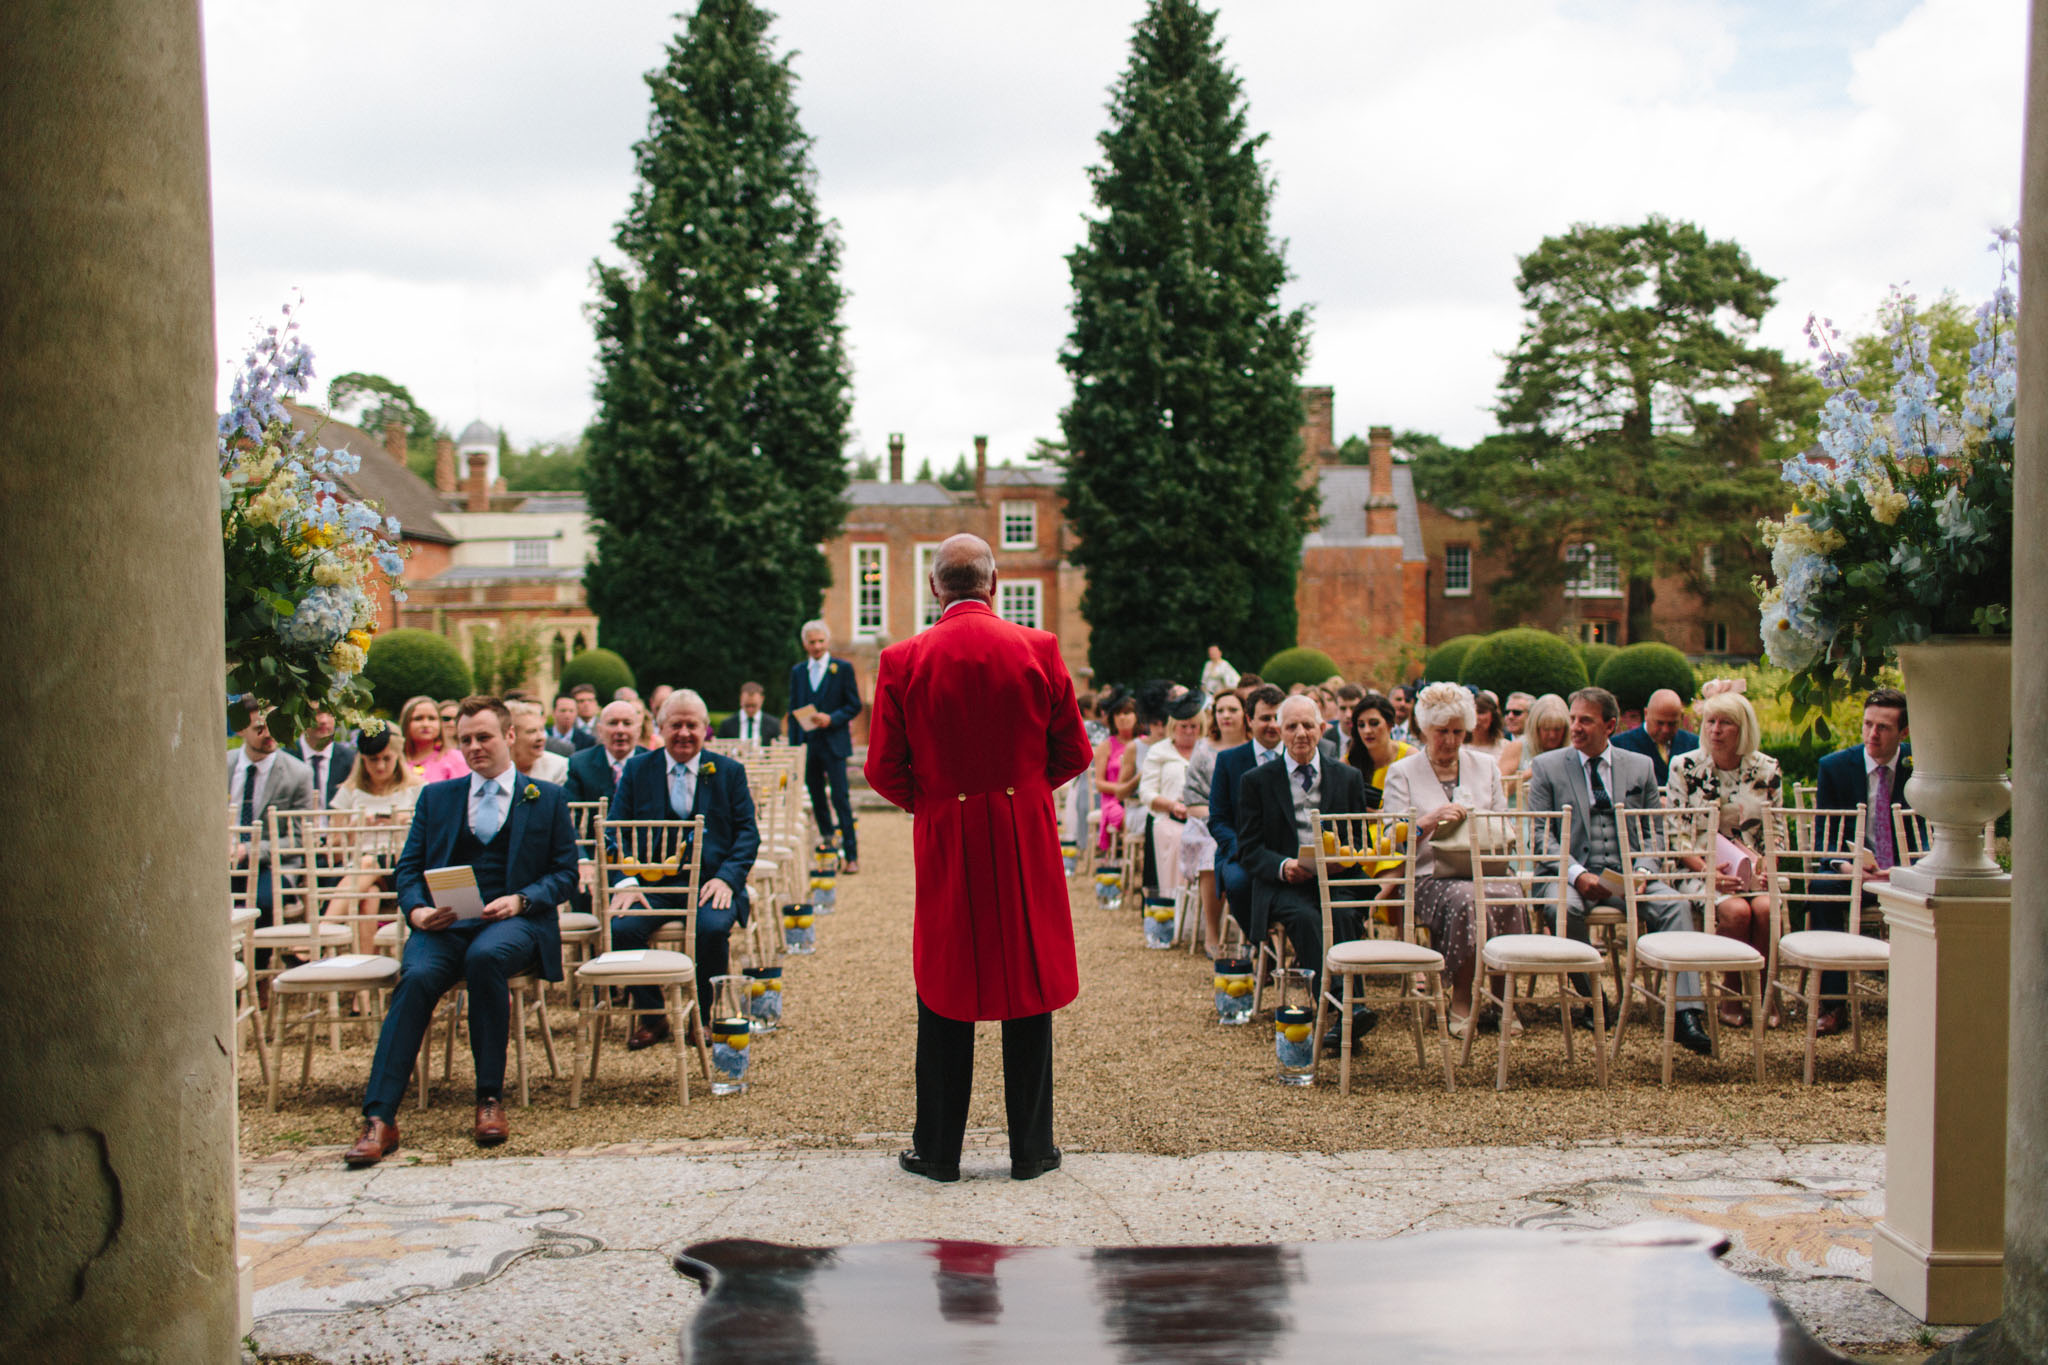 Wotton house wedding photography, hayley rose photography-13.jpg